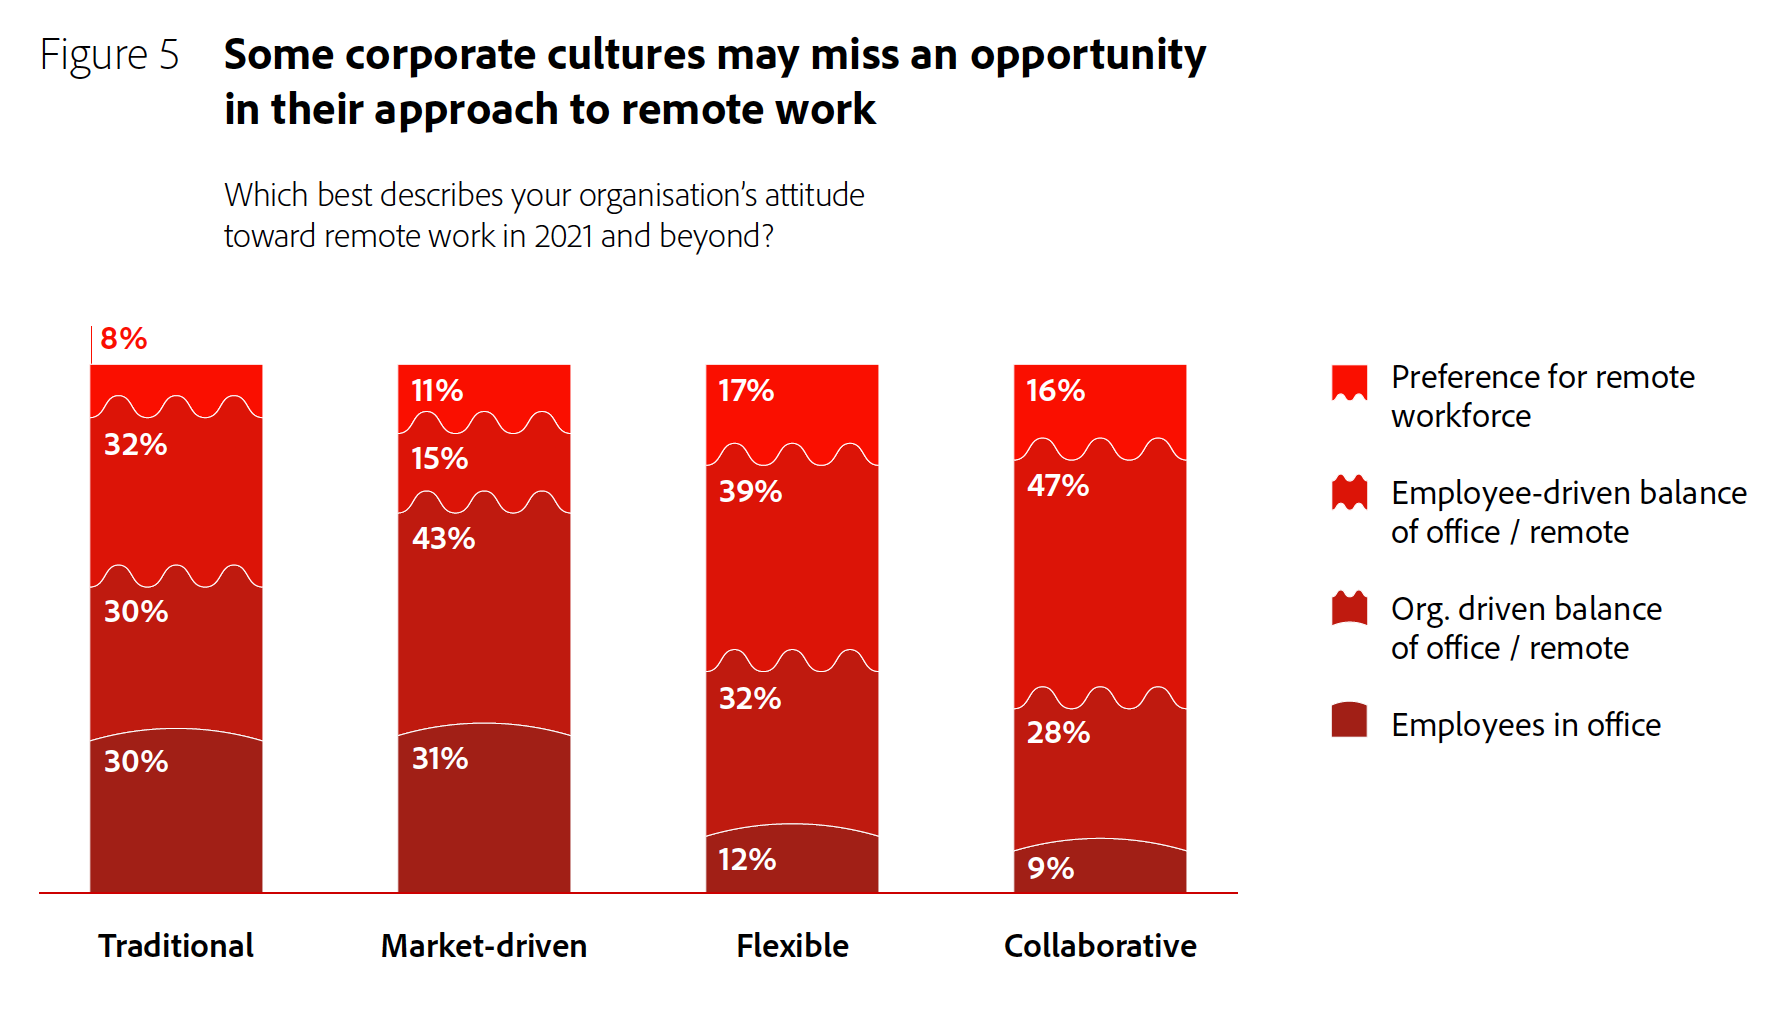 Figure 5: Some corporate cultures may miss an opportunity in their approach to remote work.